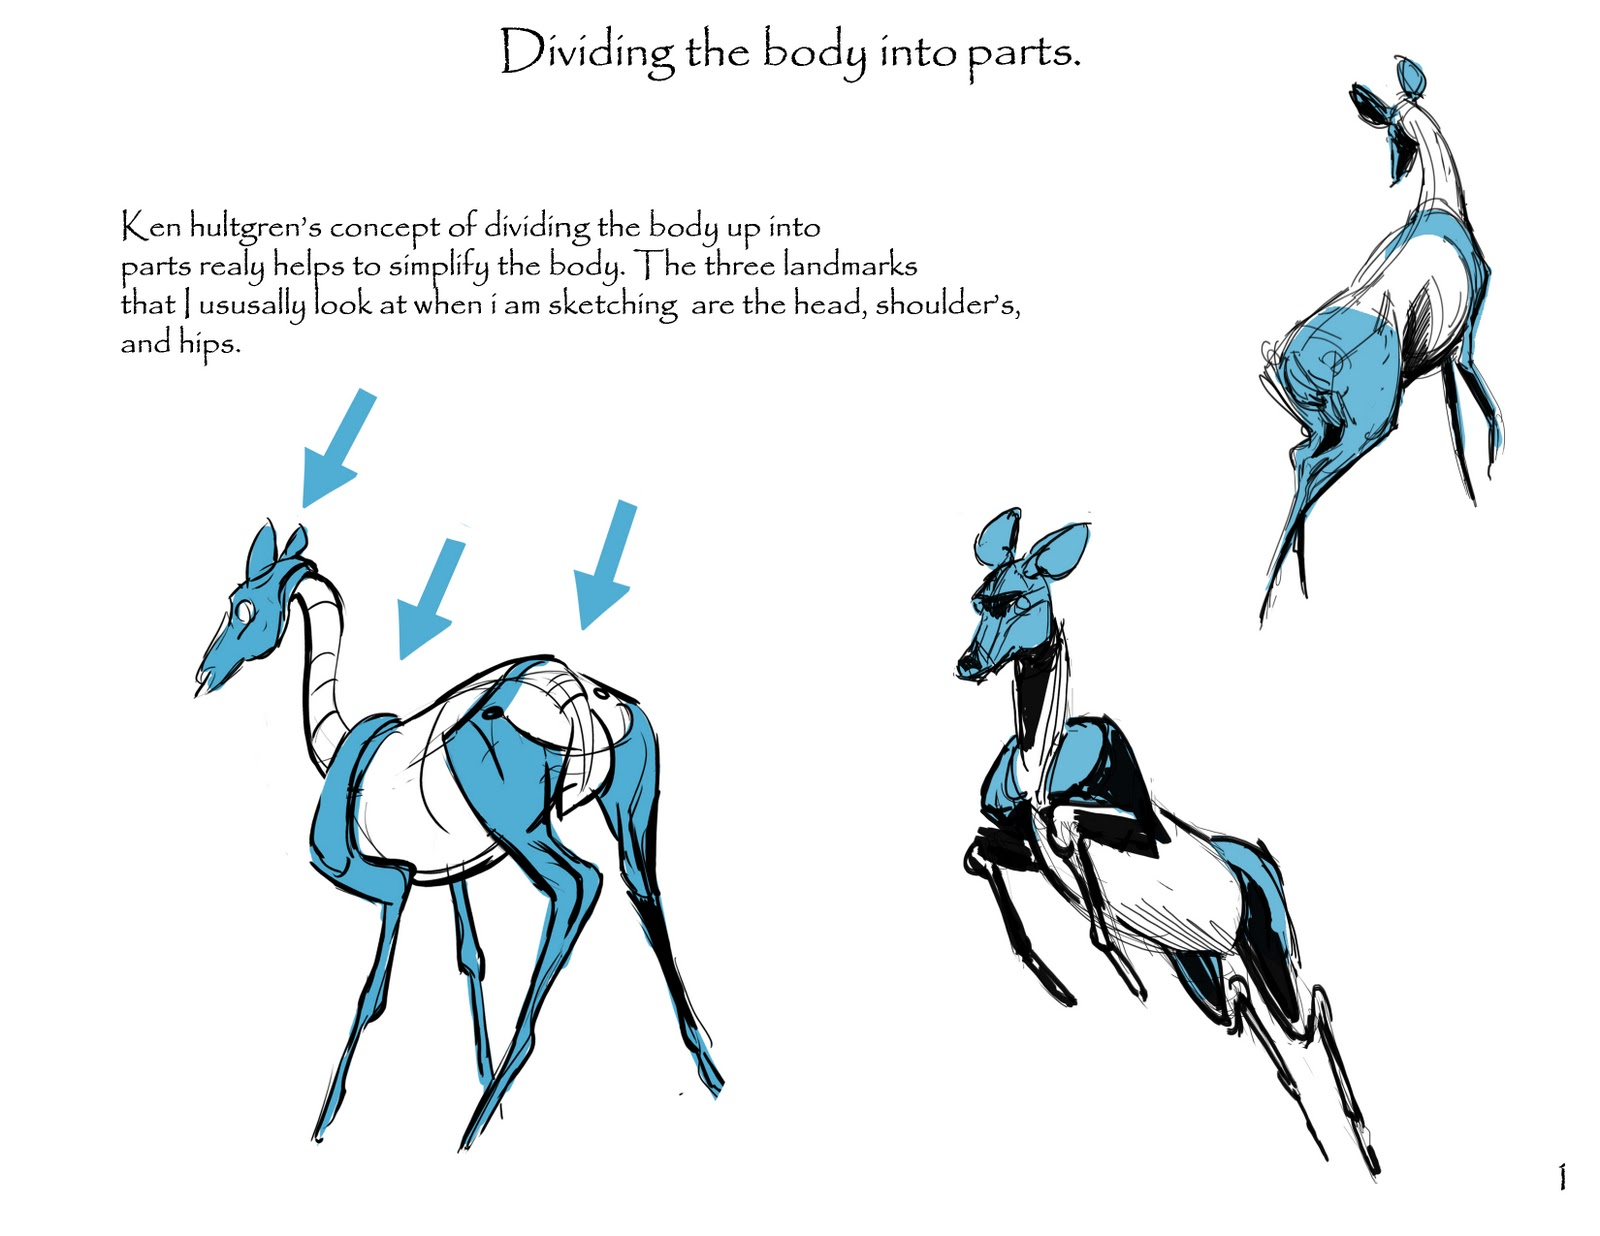 Animal and Life Drawing Blog: First Post! Sketching Deer